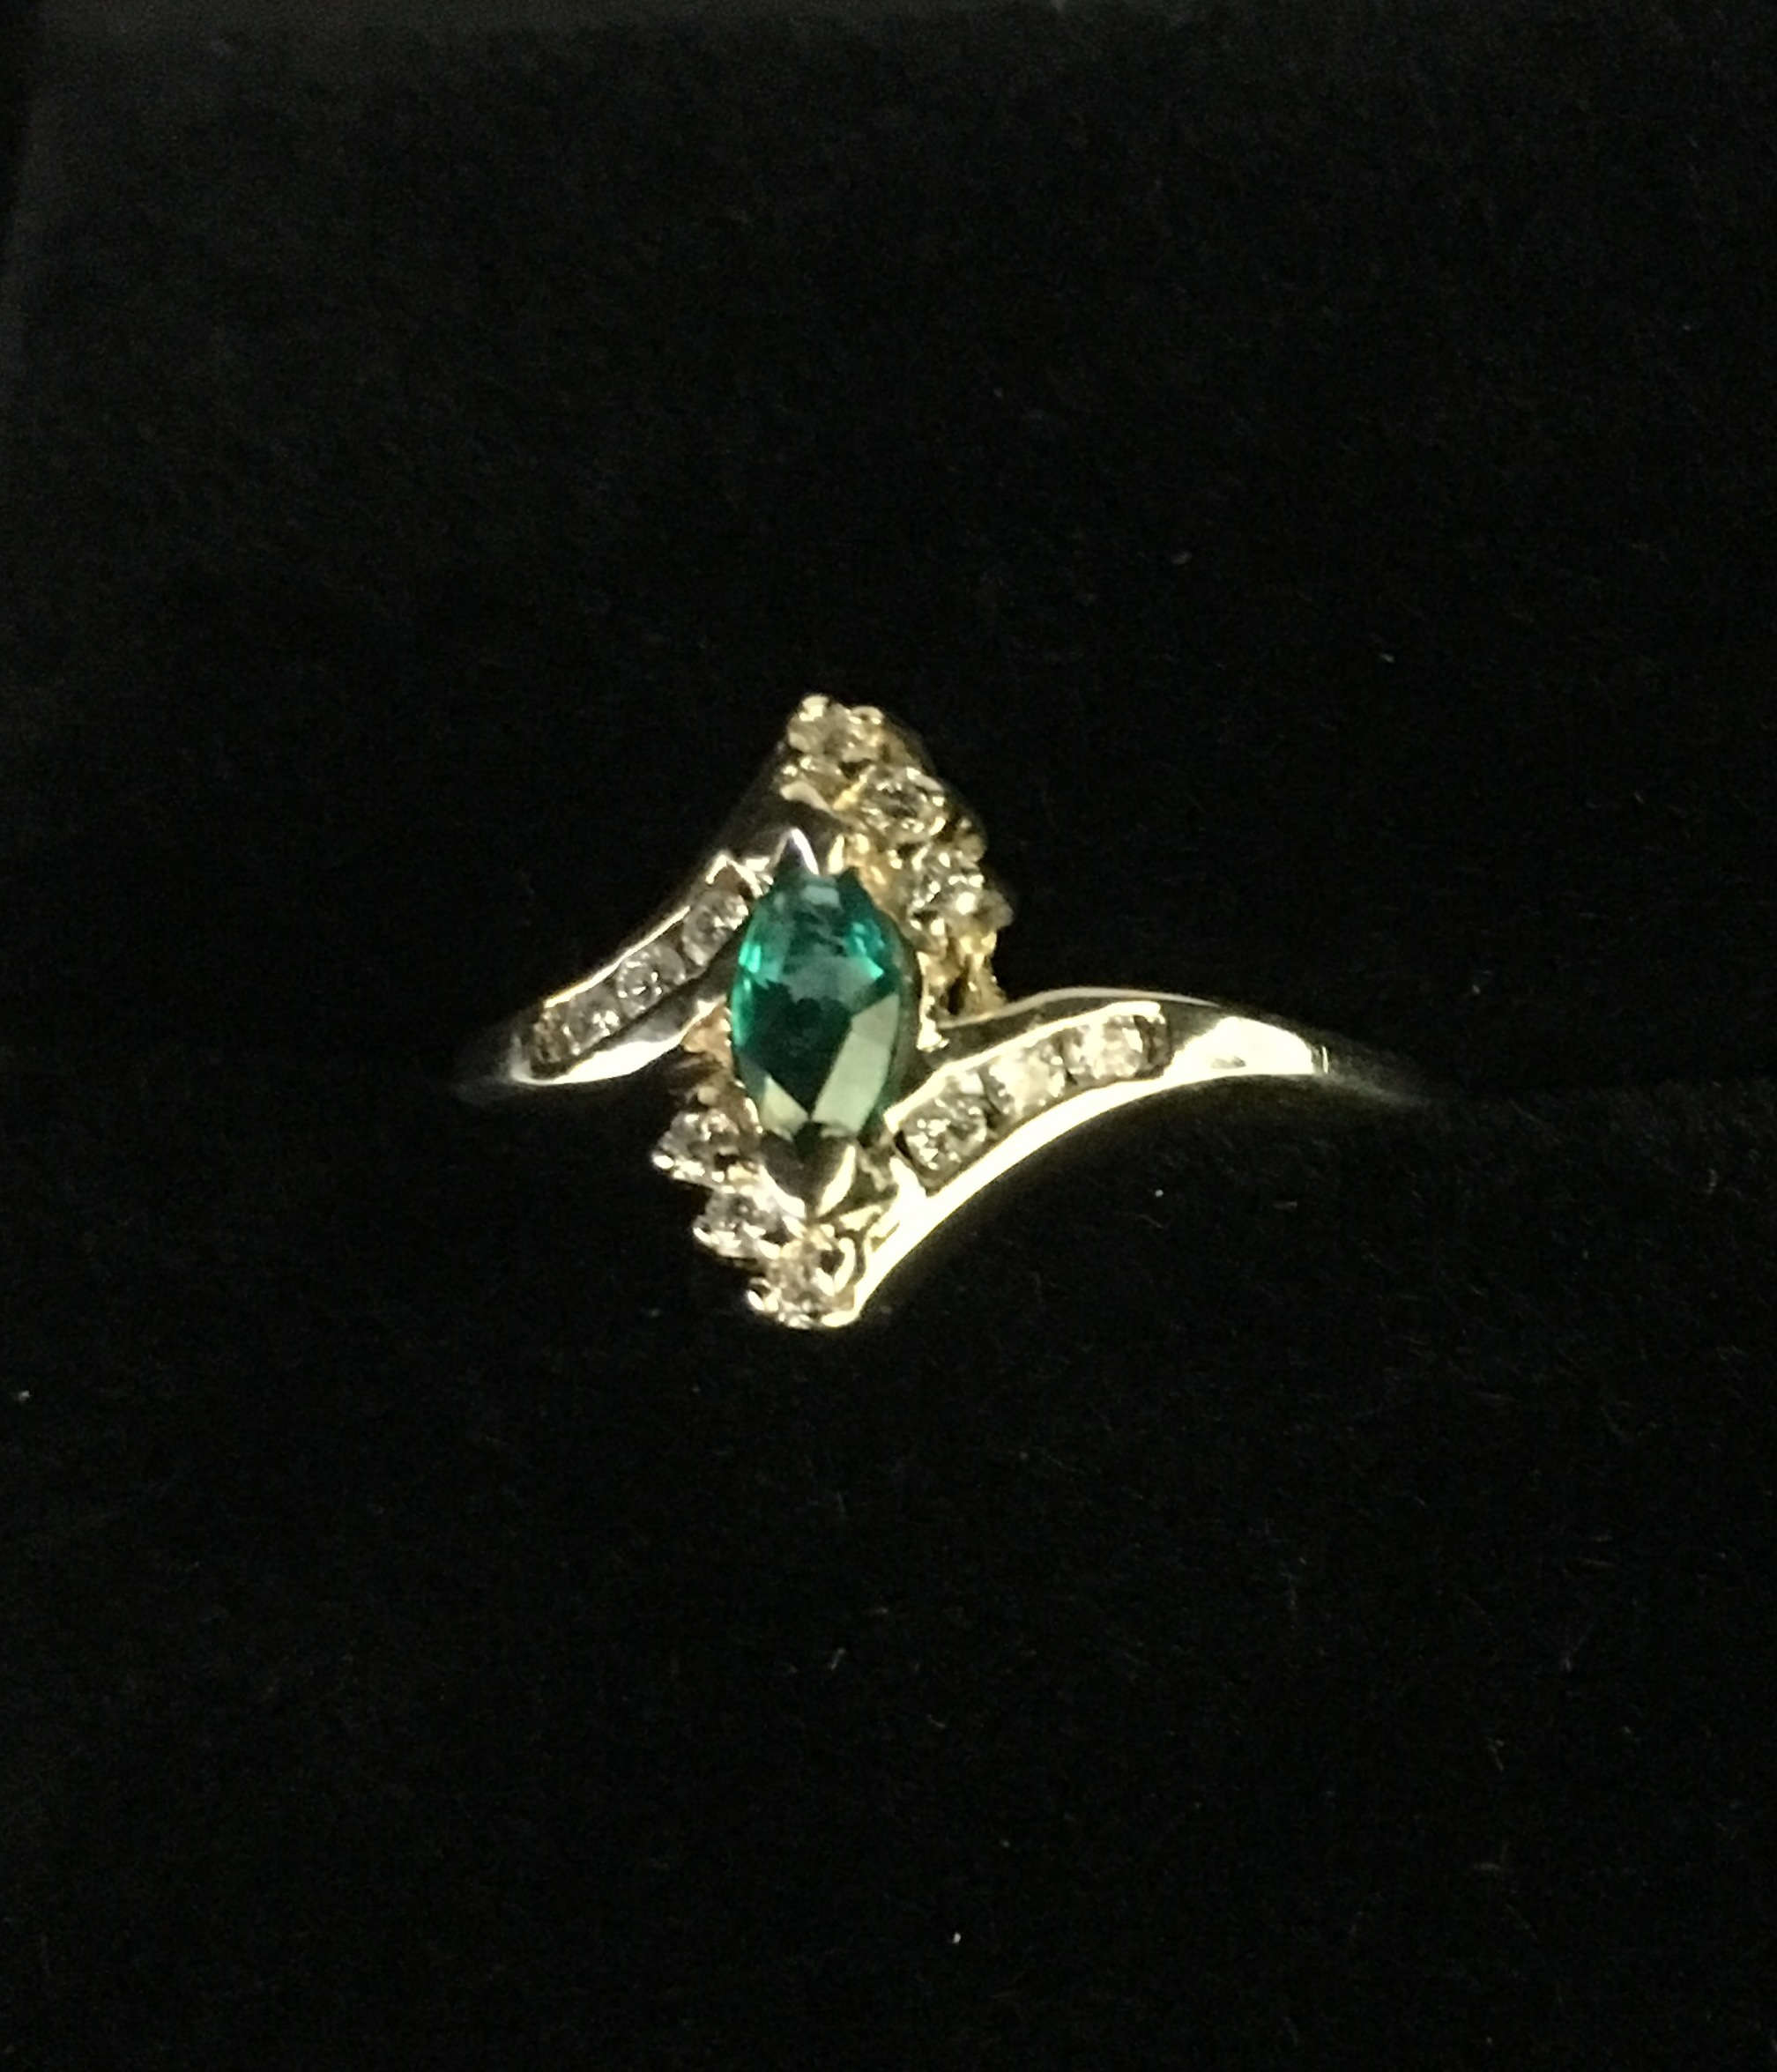 10KT WHITE GOLD MARQUISE GREEN STONE RING. SIZE: 5.5